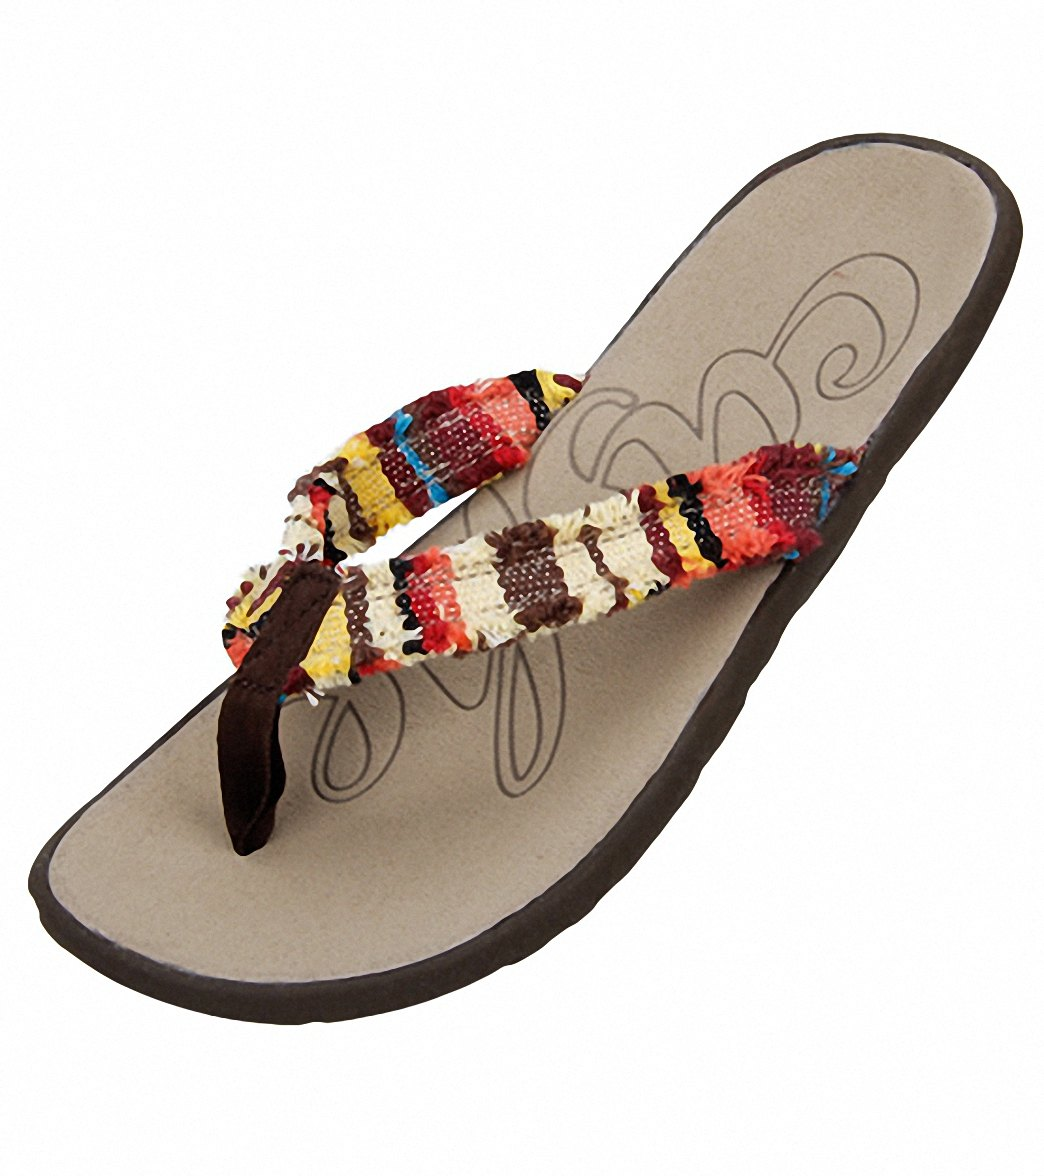 7a893d0183c0 Share. Share on Facebook · Tweet on Twitter · Pin on Pinterest. Visit  Product Page close X. Cushe Women s Flipper Sandal